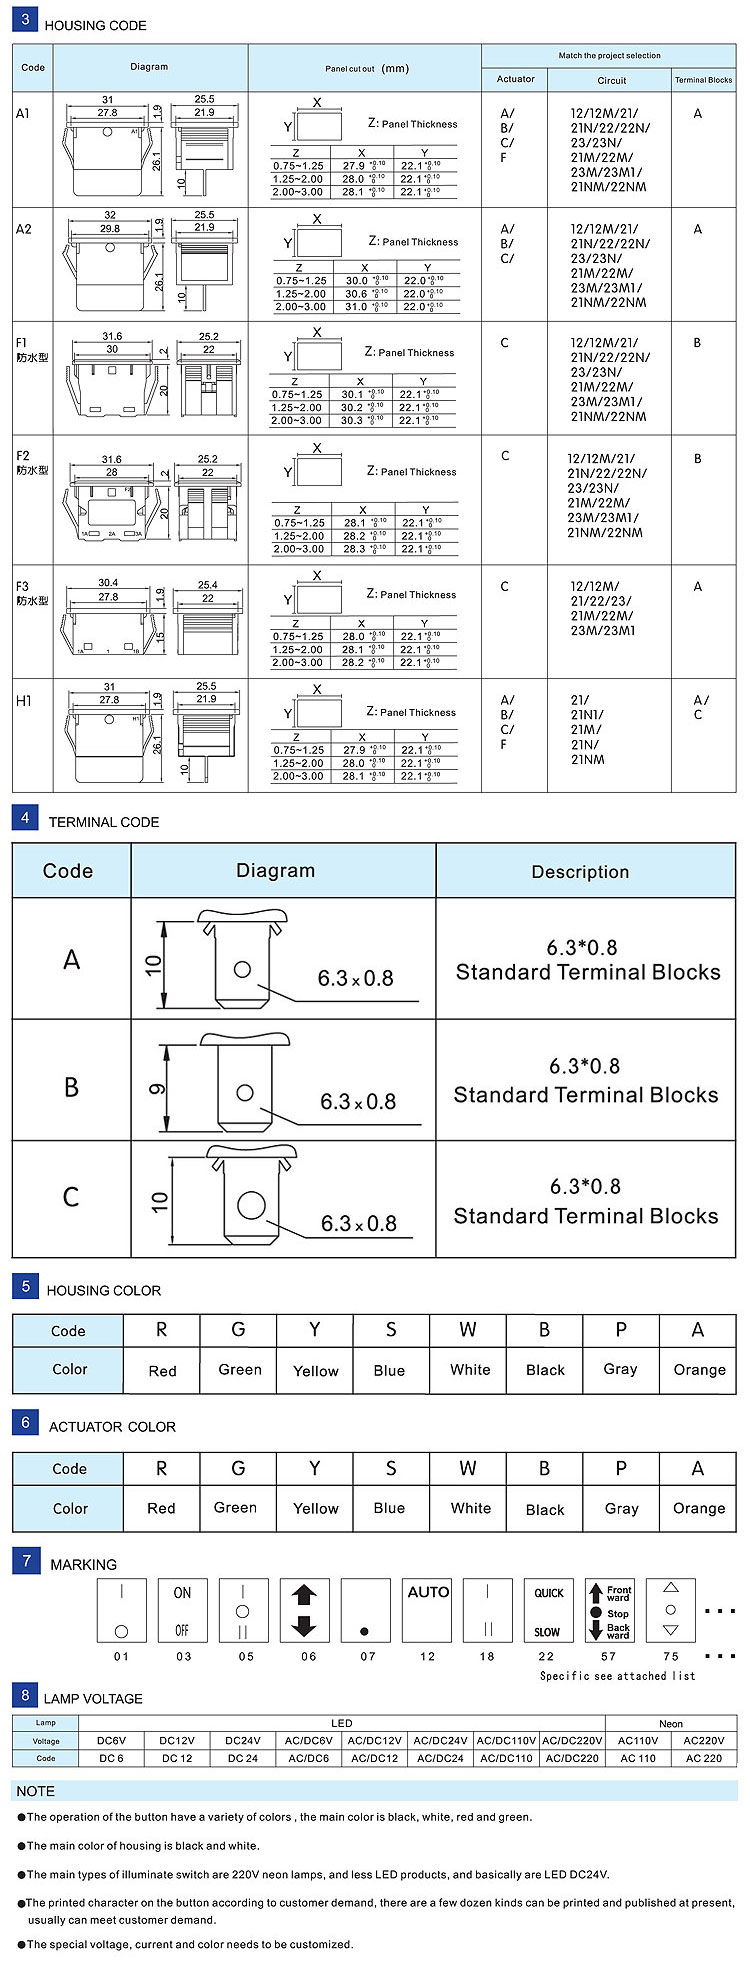 KCD2 series rocker switches